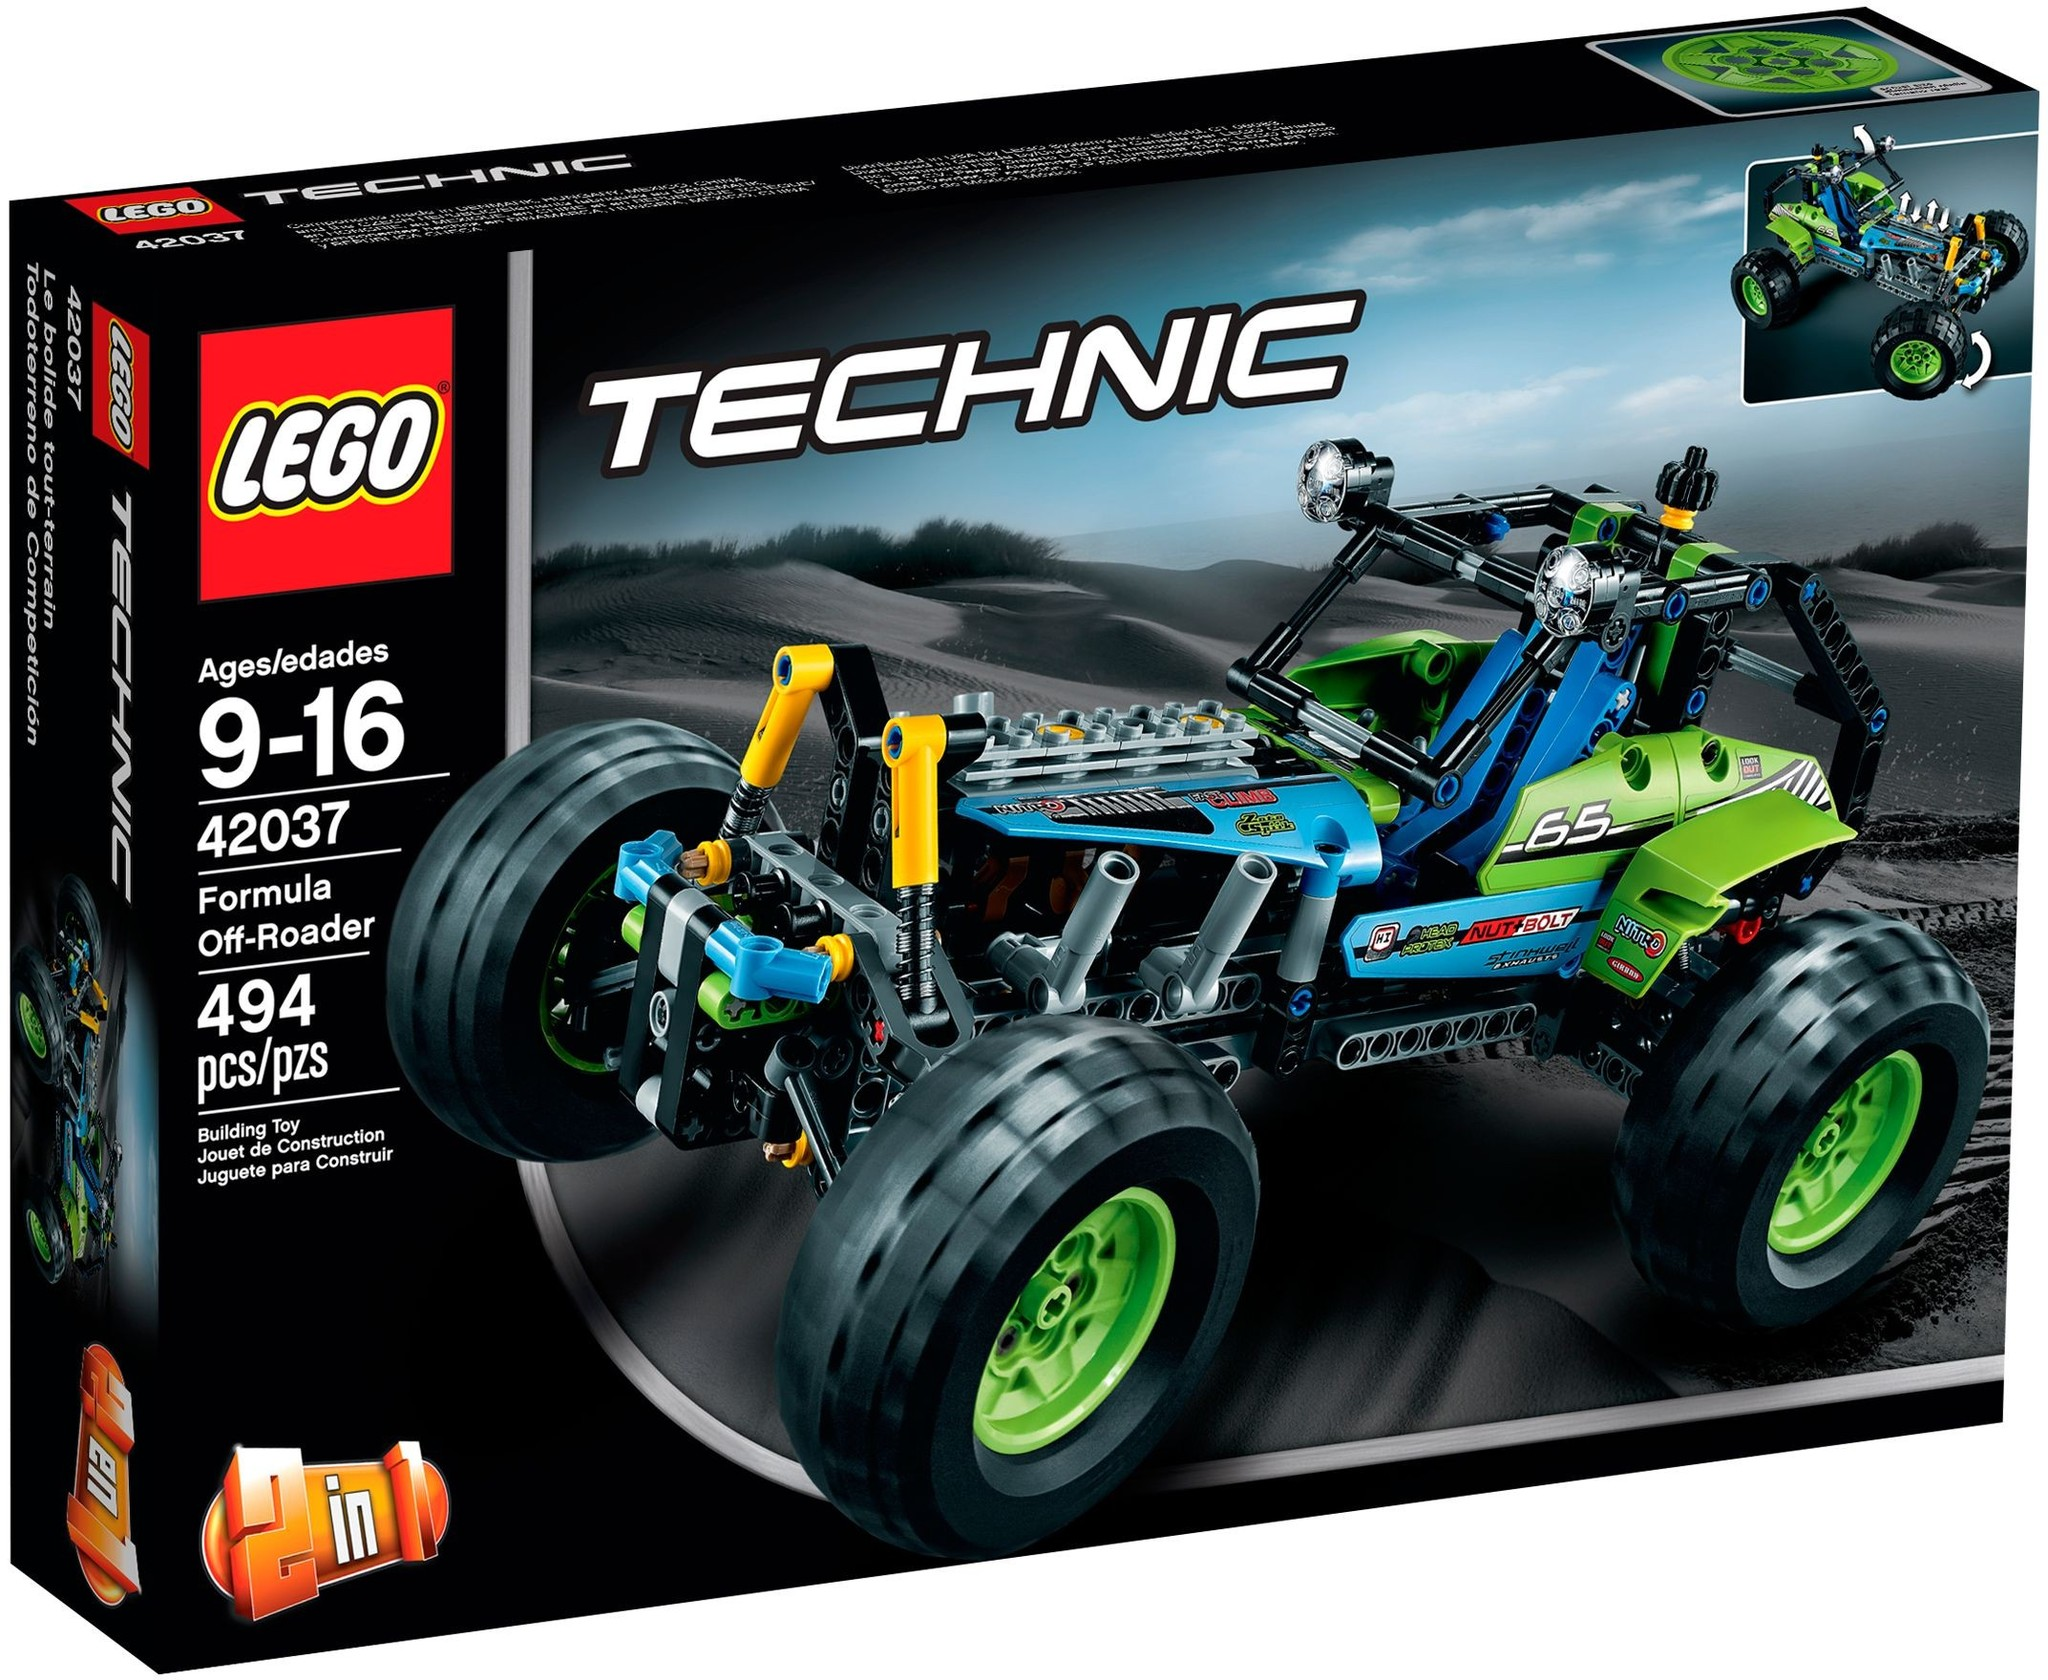 LEGO 42037 - Technic - Formula Off-Roader